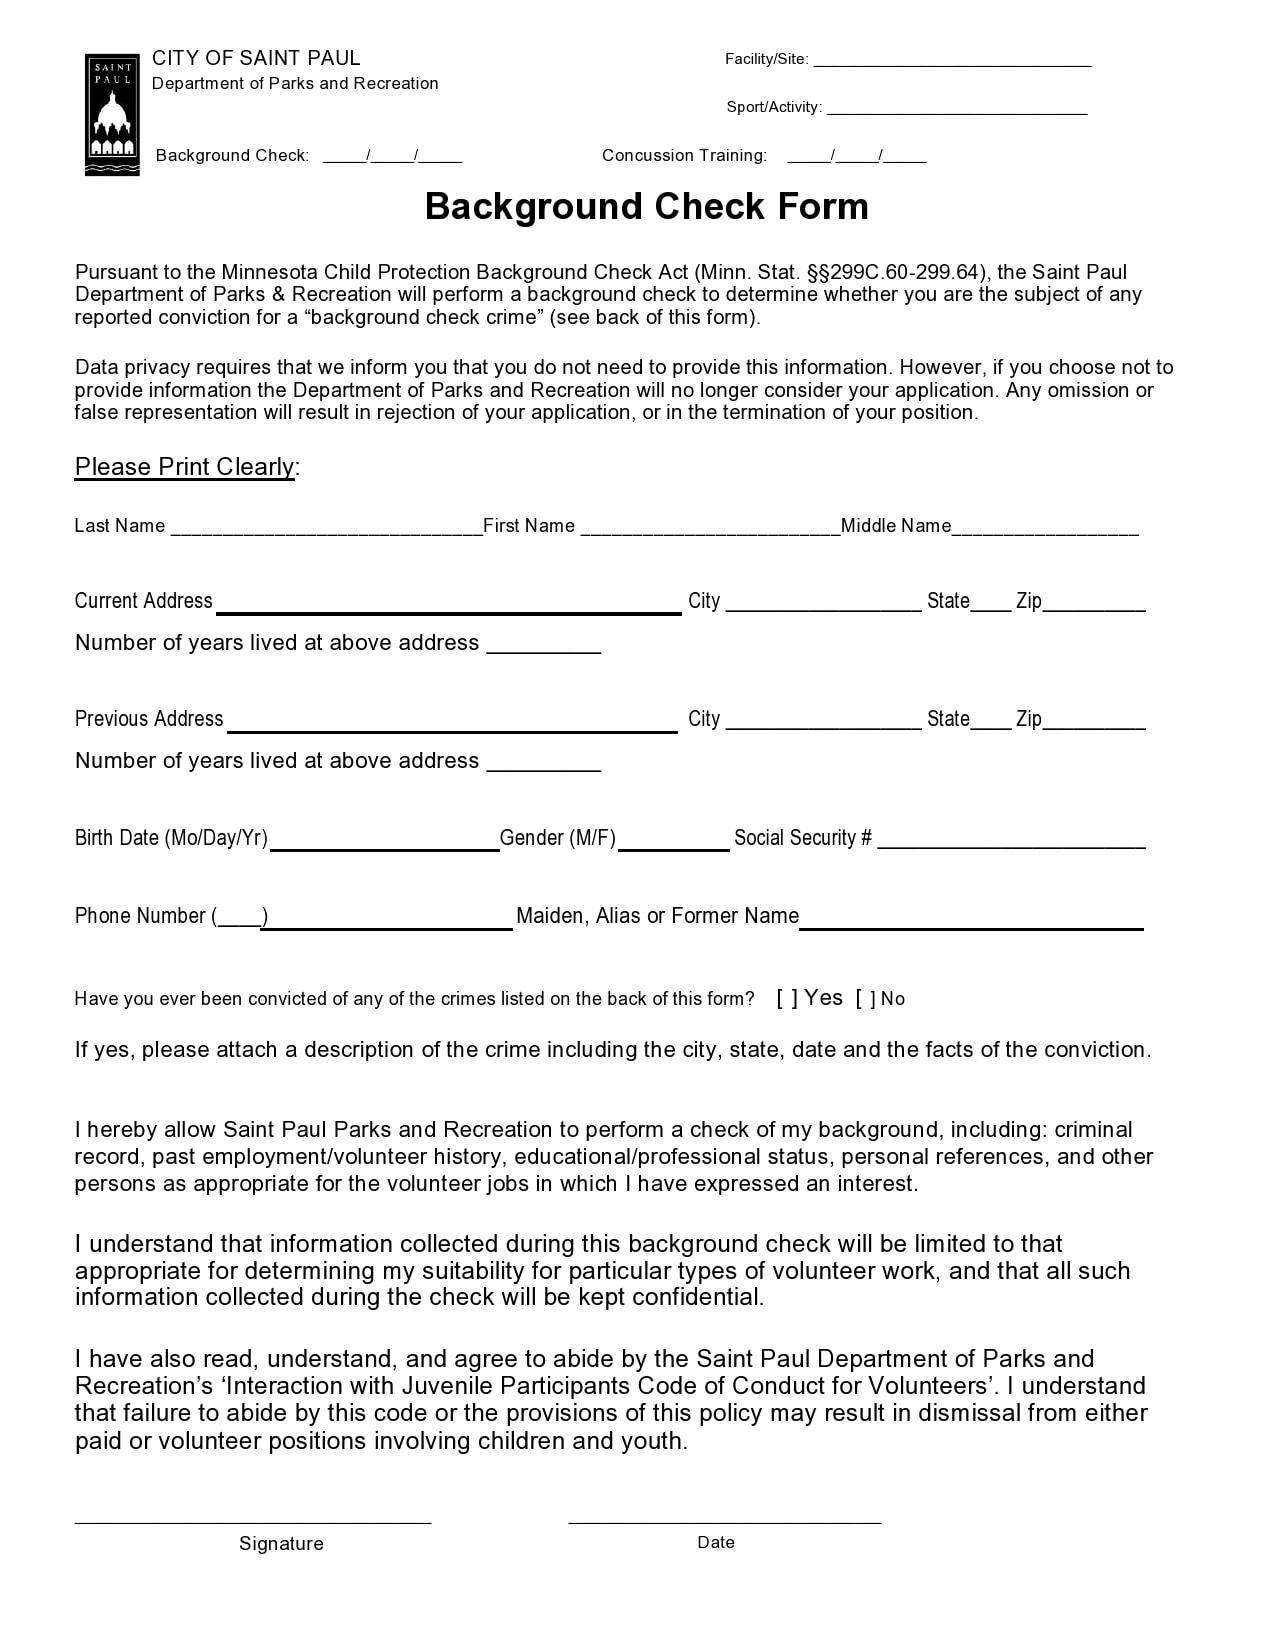 background check form 02